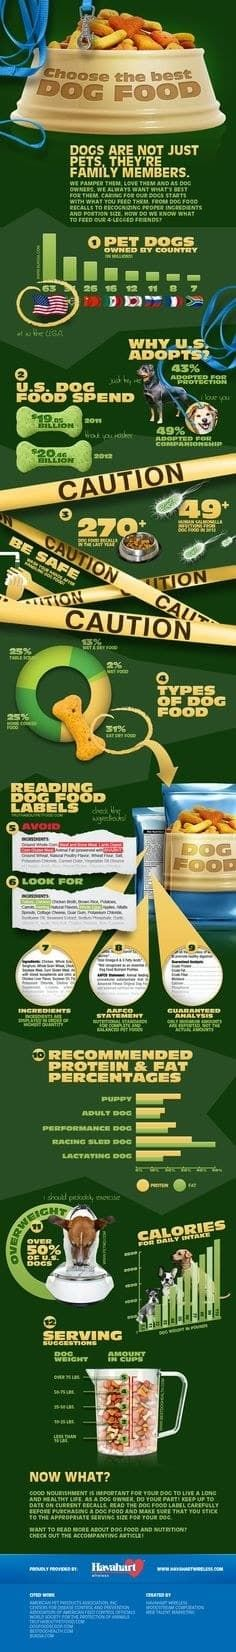 Choose the best dog food. What to look for in dog food. Help find what to look for when buying dog food.